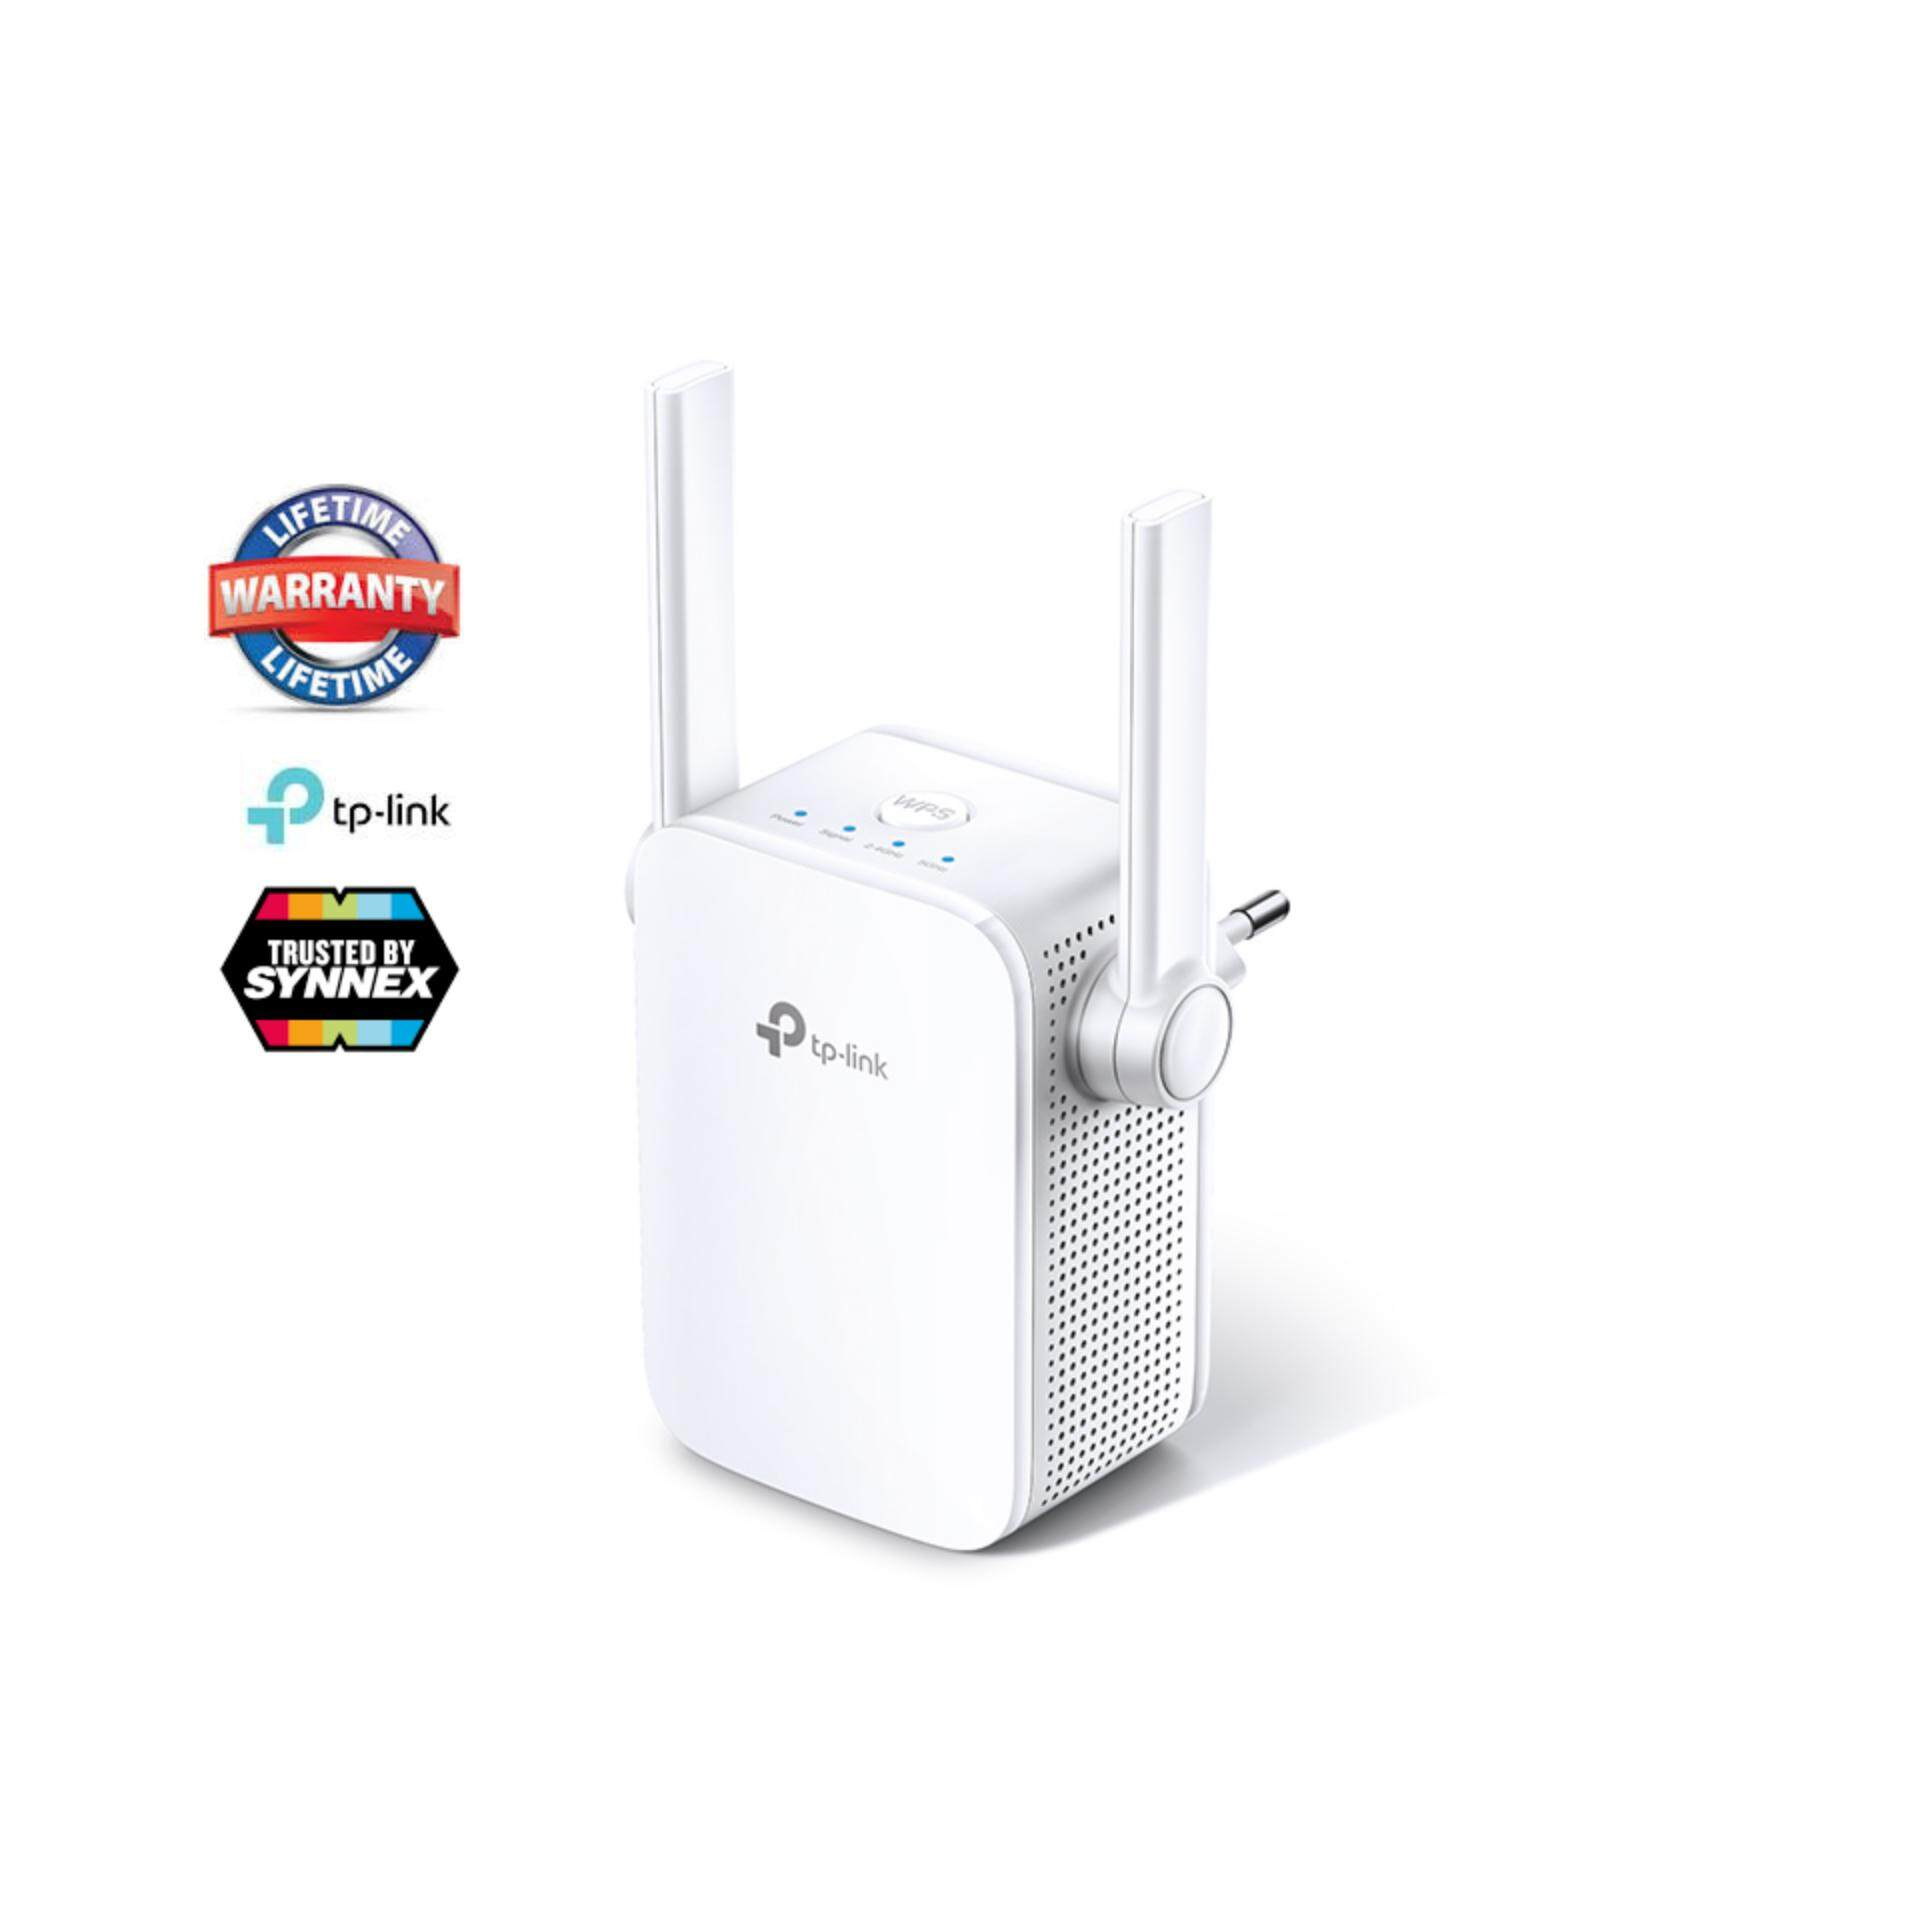 ราคา Tp Link รีพีทเตอร์ Ac1200 Wi Fi Range Extender Re305 Lifetime Warranty Tp Link ใหม่